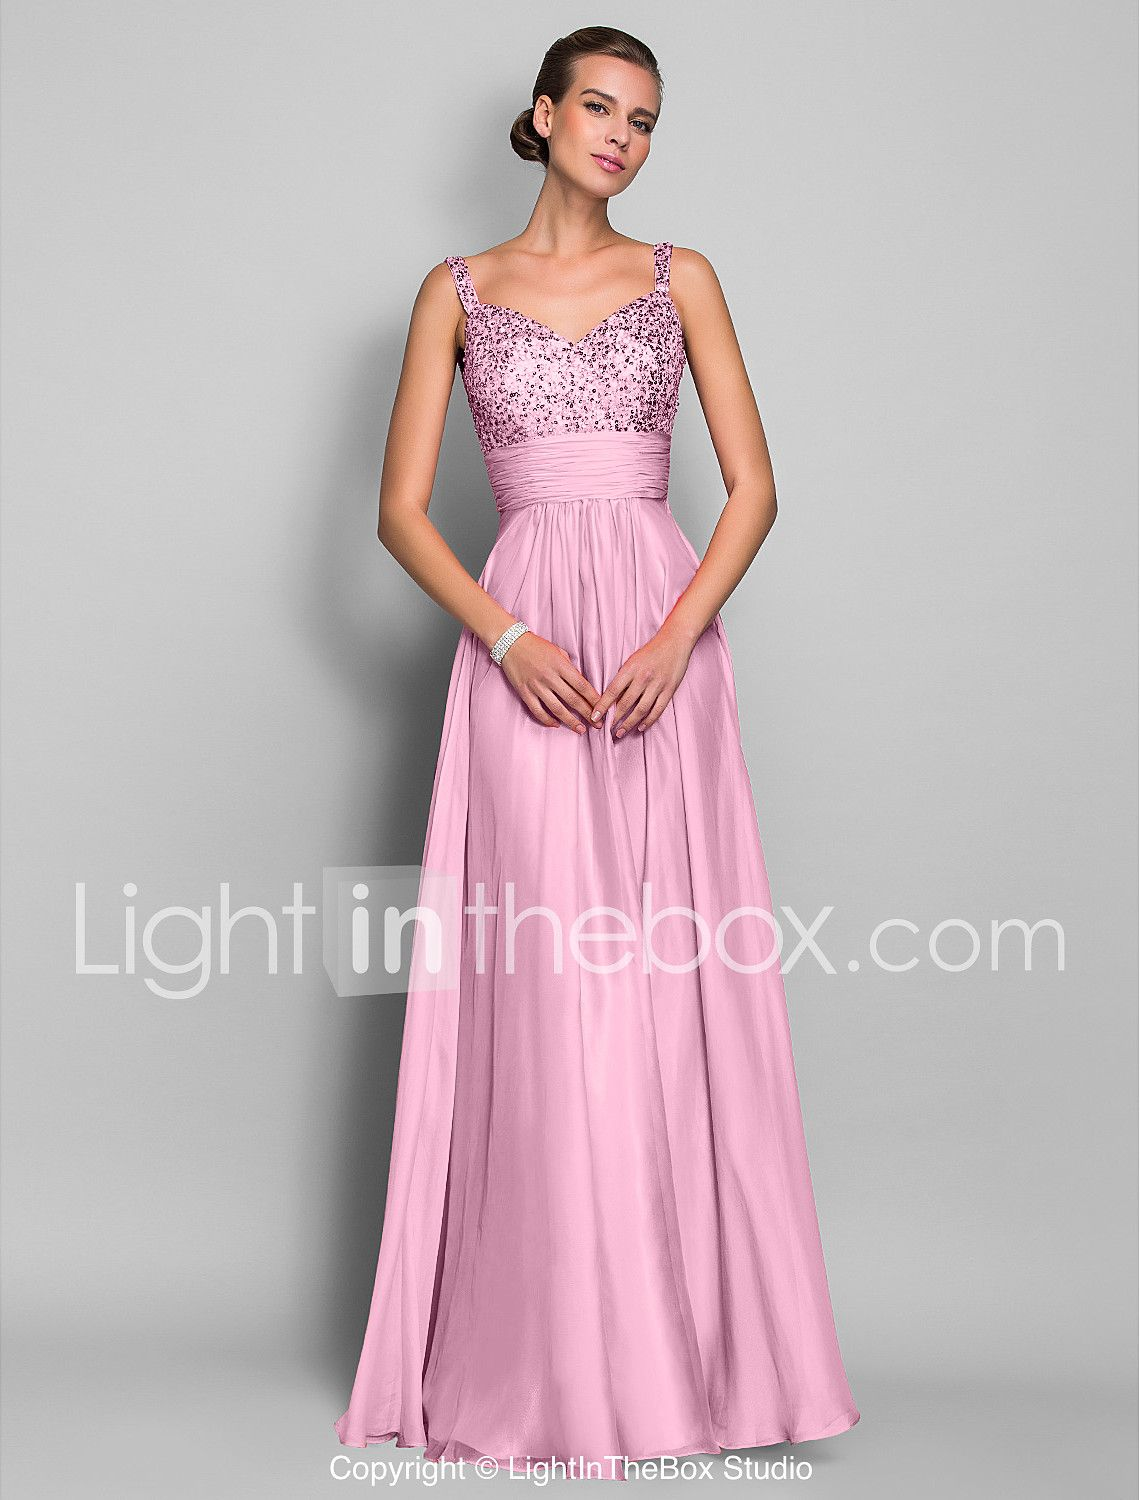 Sheath column spaghetti straps floor length chiffon sequined prom